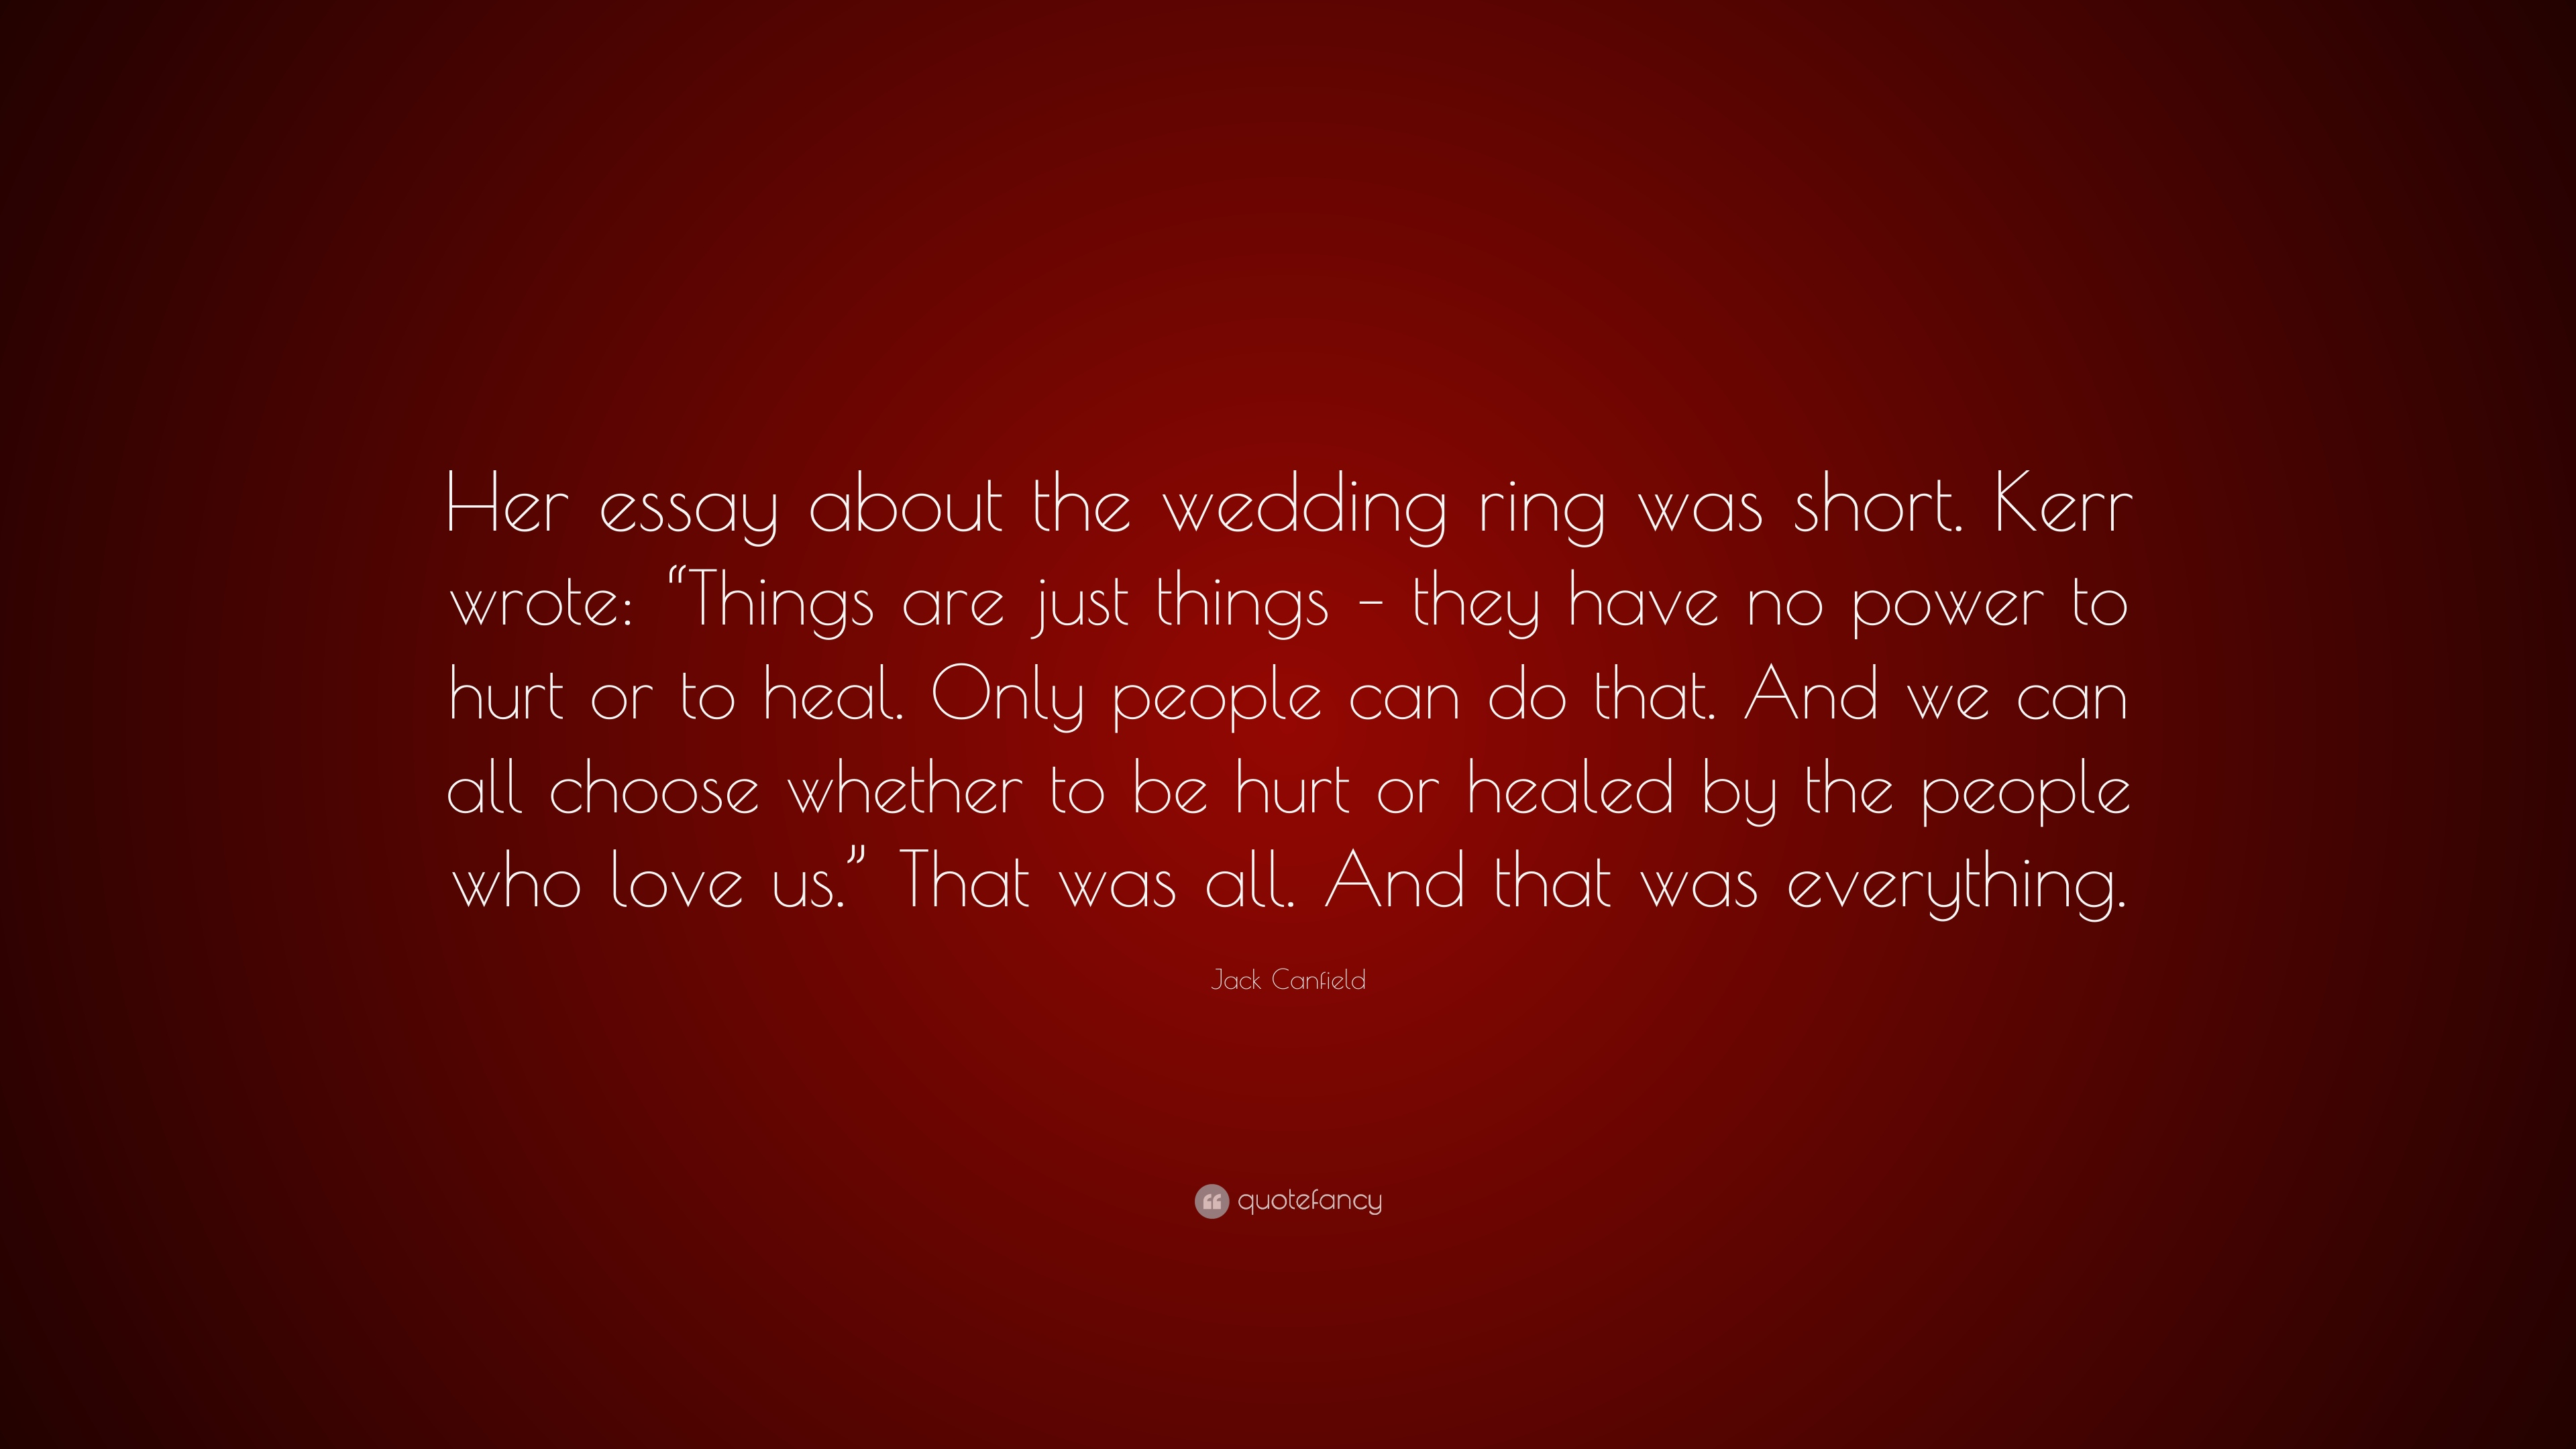 Jack Canfield Quote Her essay about the wedding ring was short